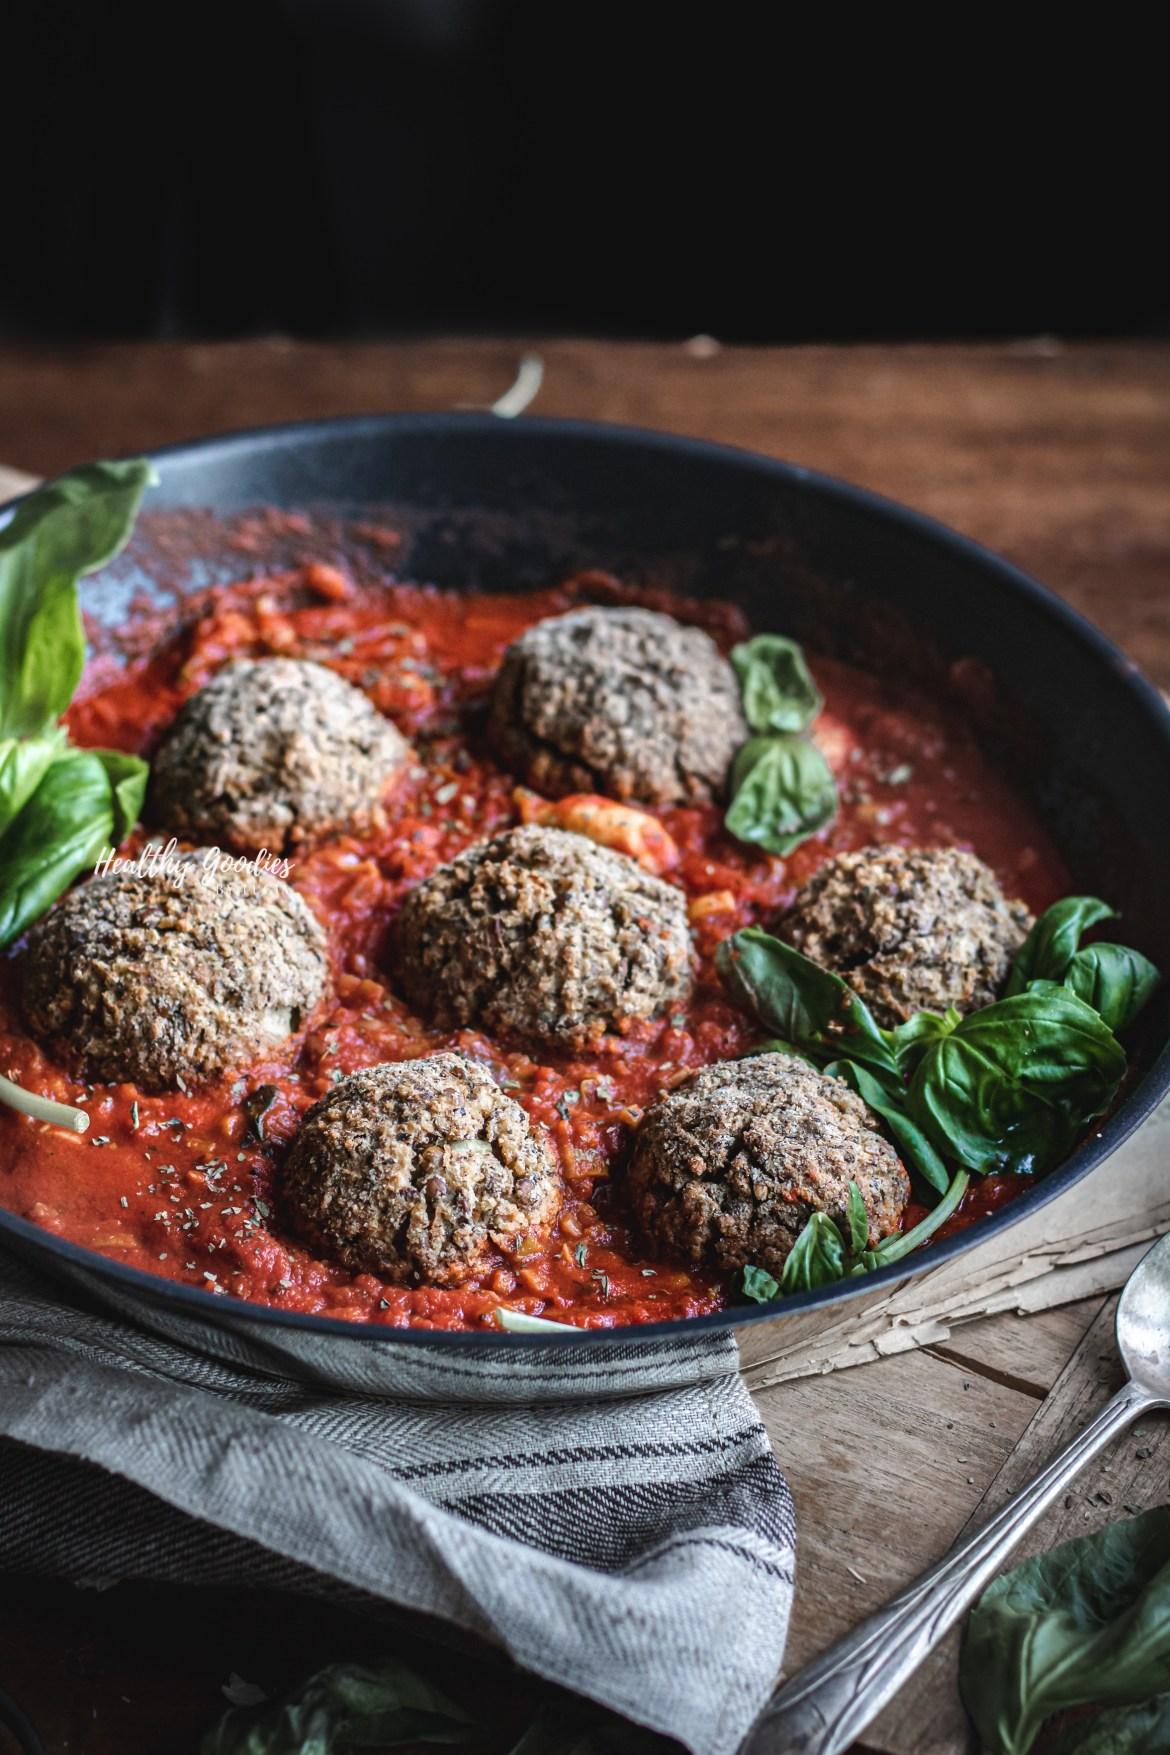 Gluten-free Vegetarian Meatballs with tomato sauce | Healthy Goodies by Lucia Marecak